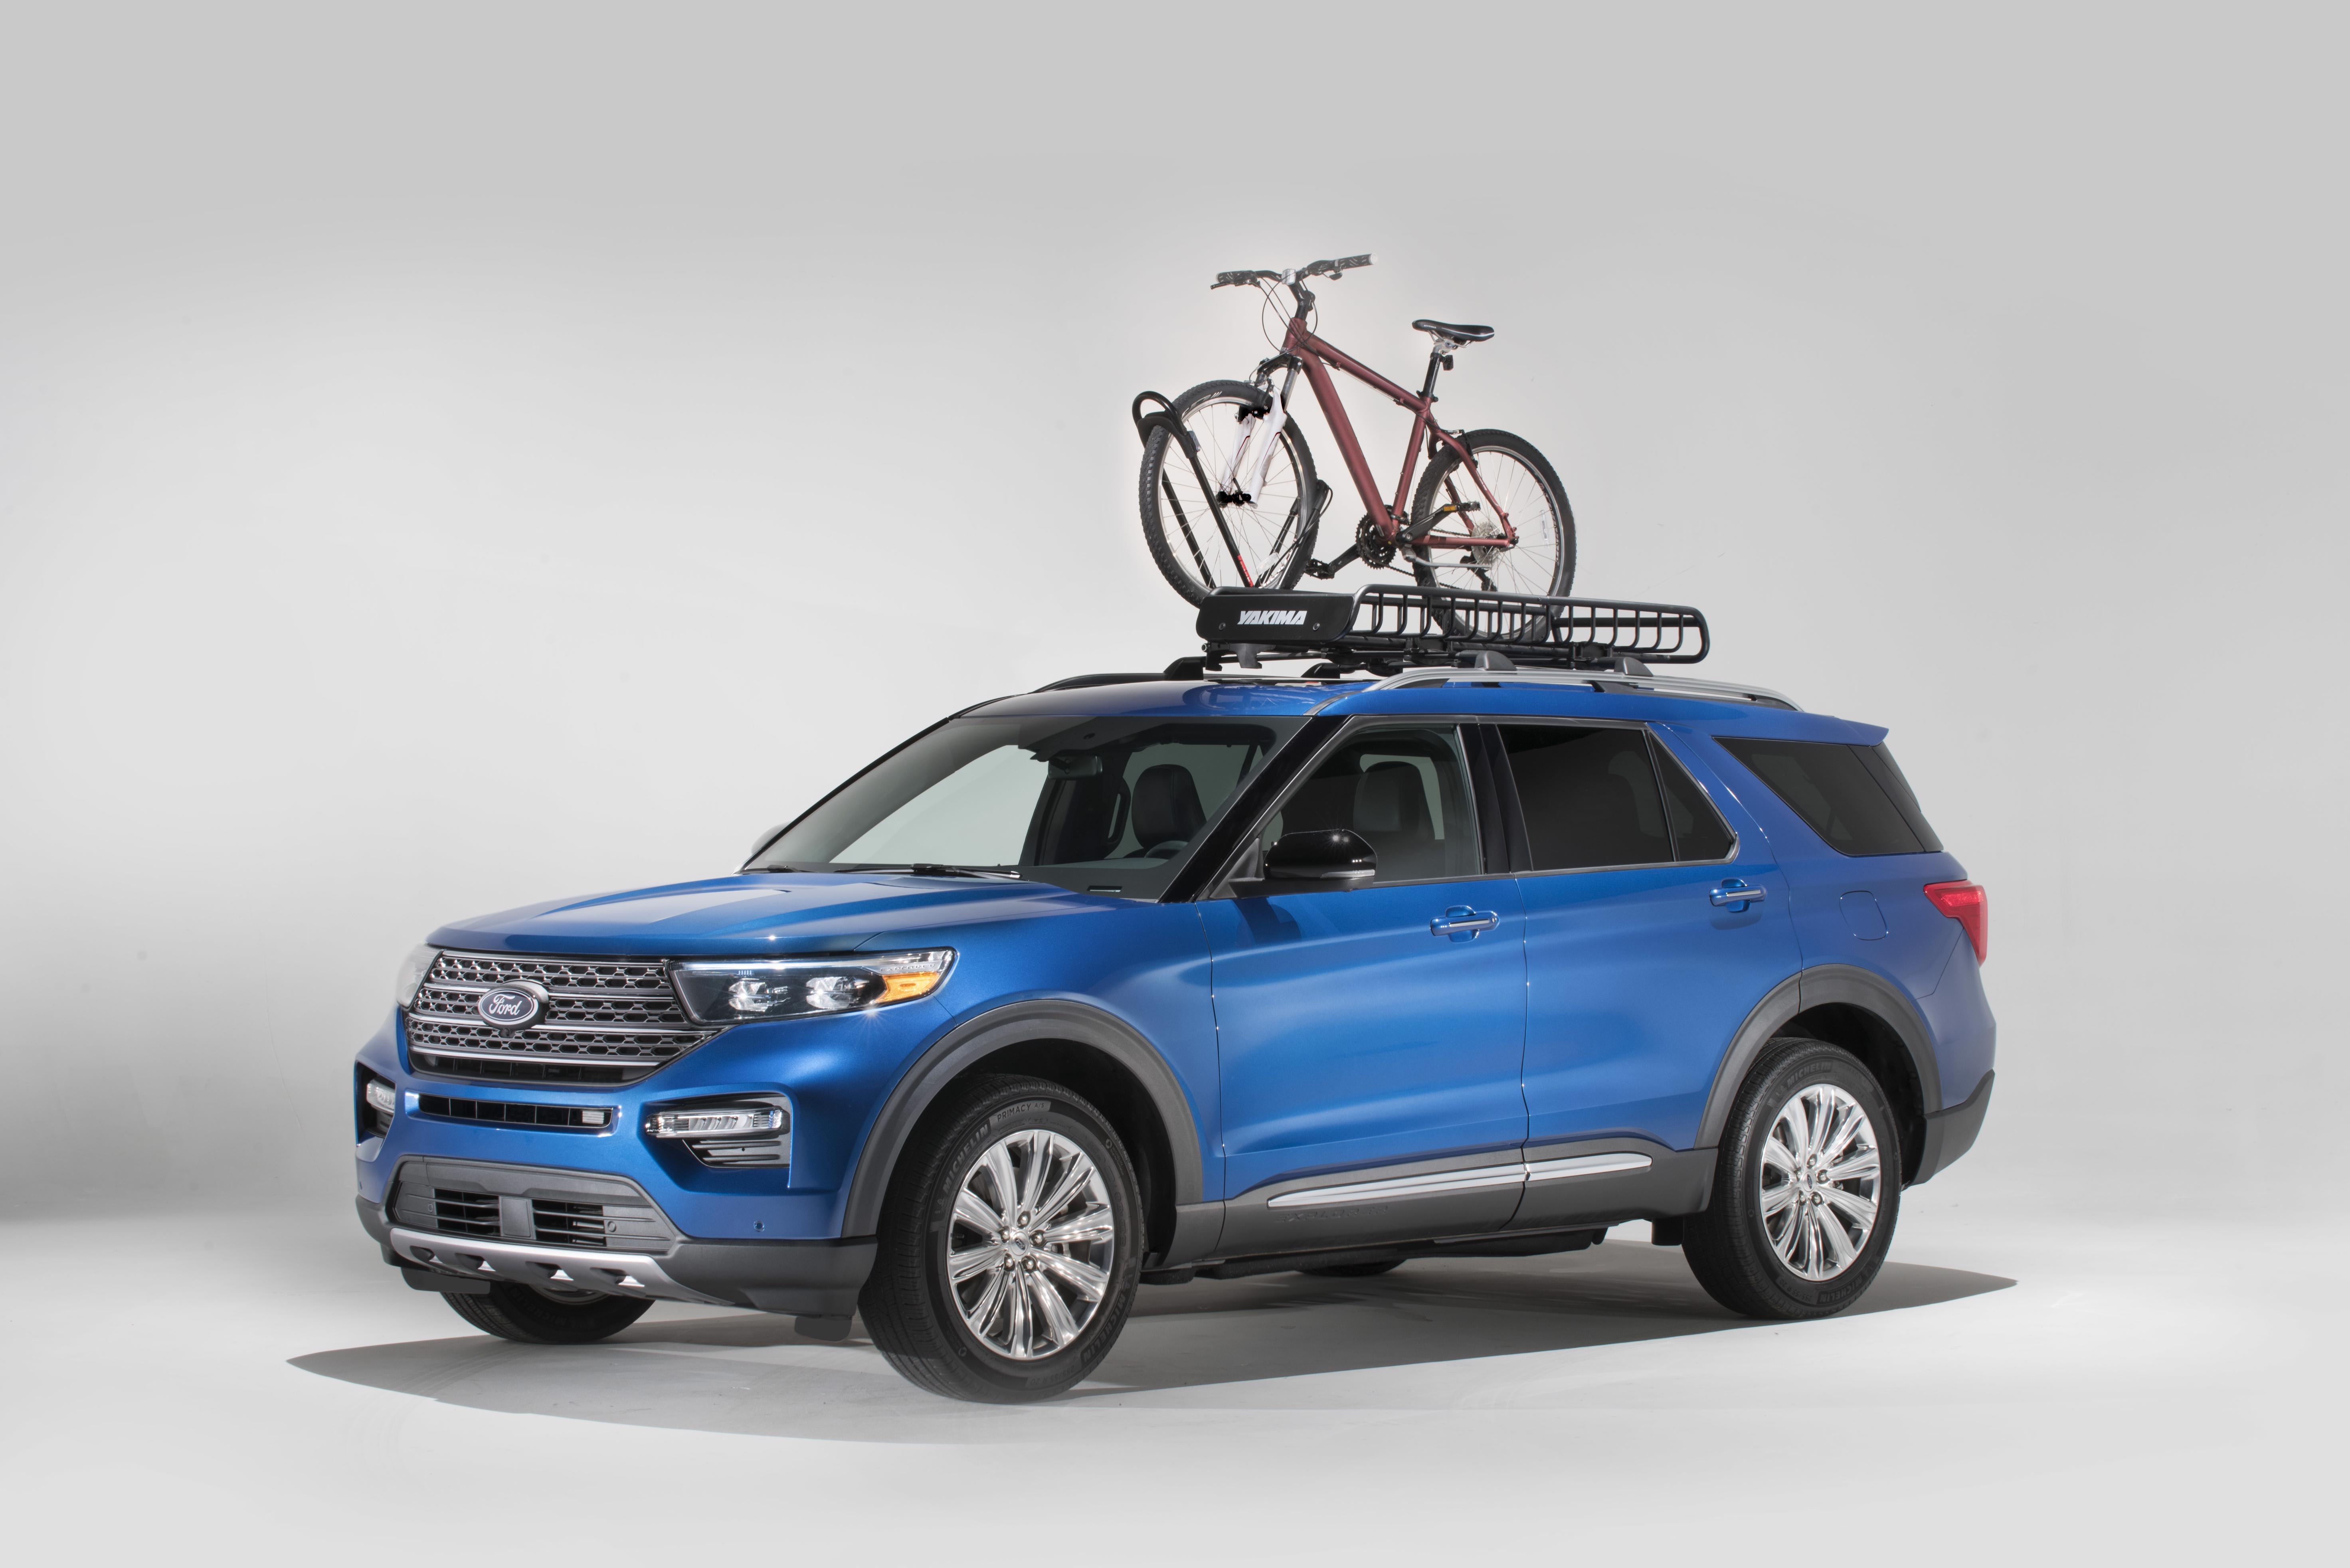 9 Ford Explorer Offered With Yakima Accessories - The News Wheel